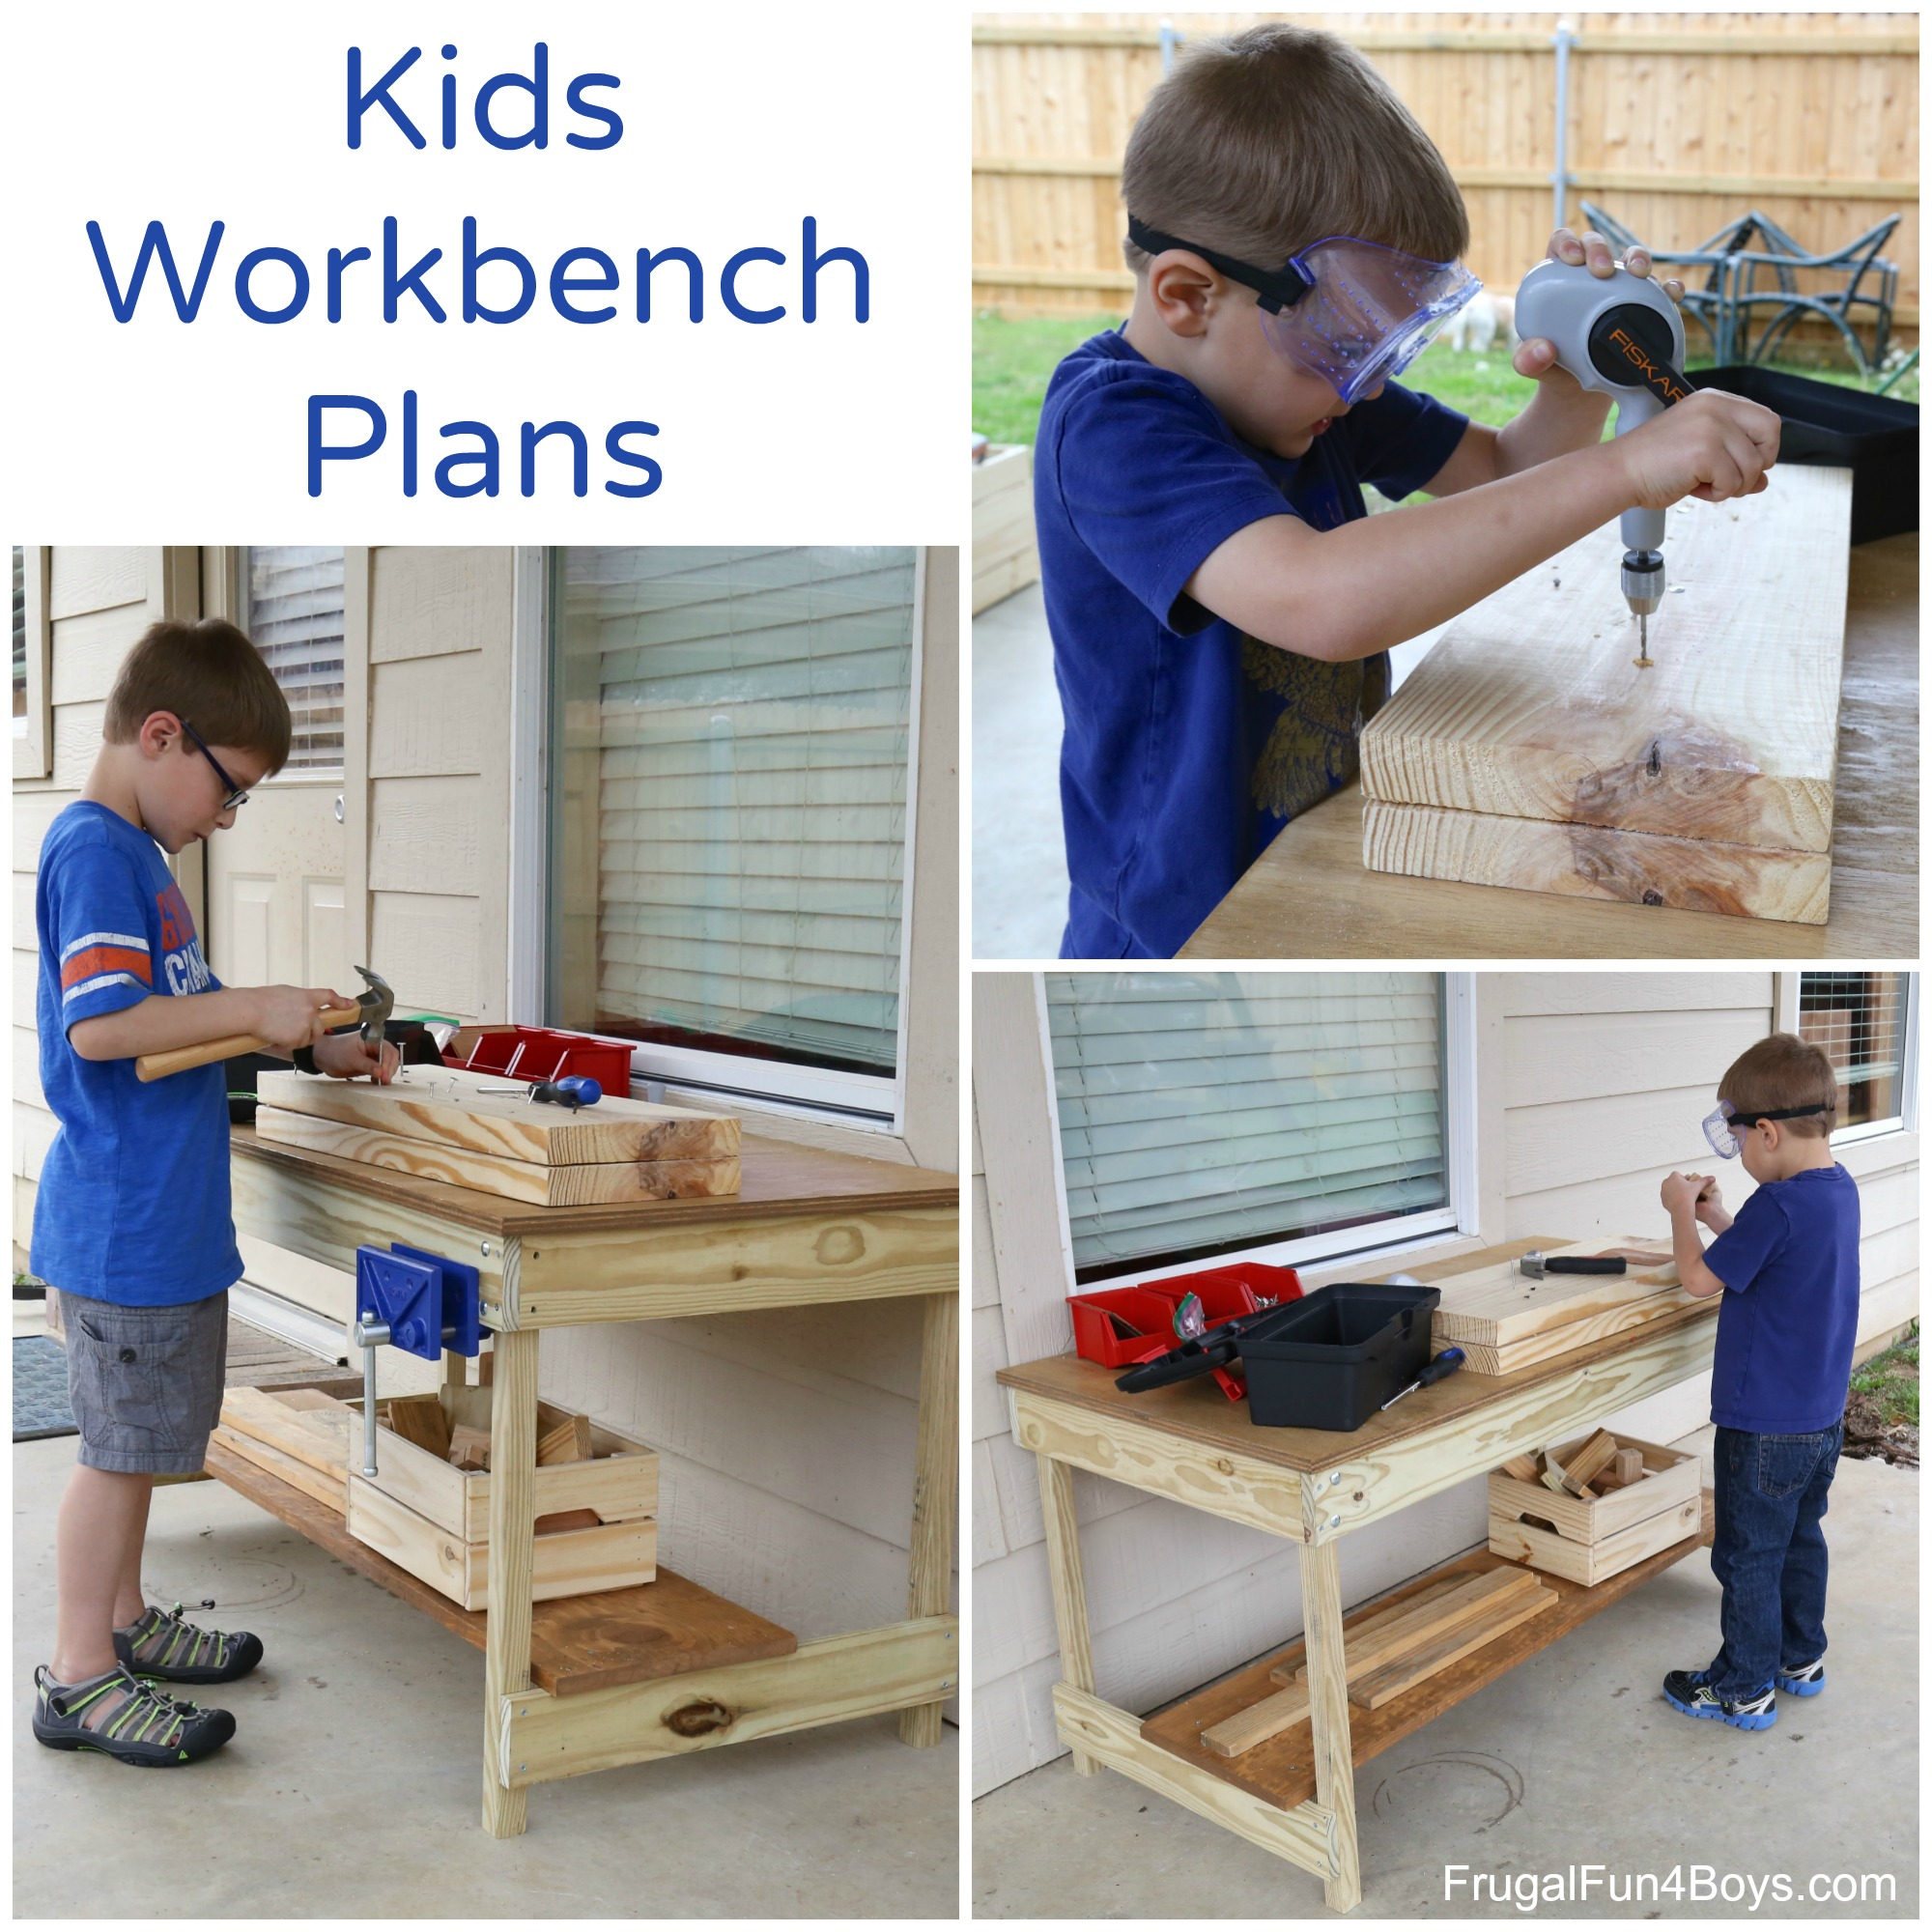 Kids Workbench Plans Woodworking For Kids Frugal Fun For Boys